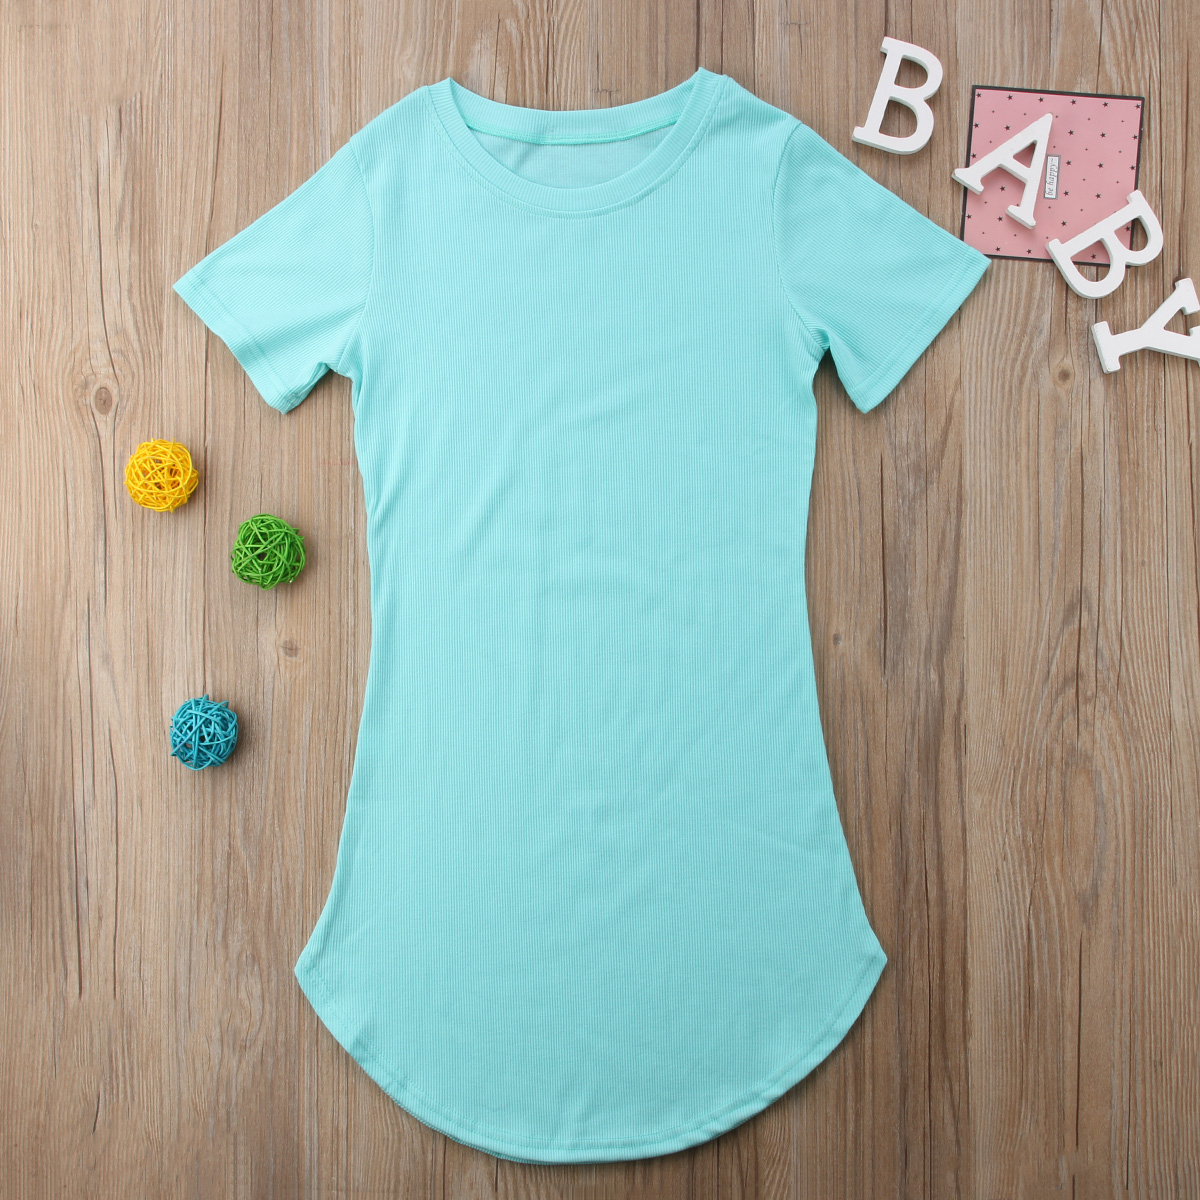 HTB1QbCHKh9YBuNjy0Ffq6xIsVXa5 2019 Summer Mom Daughter Short Sleeve T shirt Dress Family Matching Outfits Baby Kid Women Party Dresses Cotton Clothes Dropship